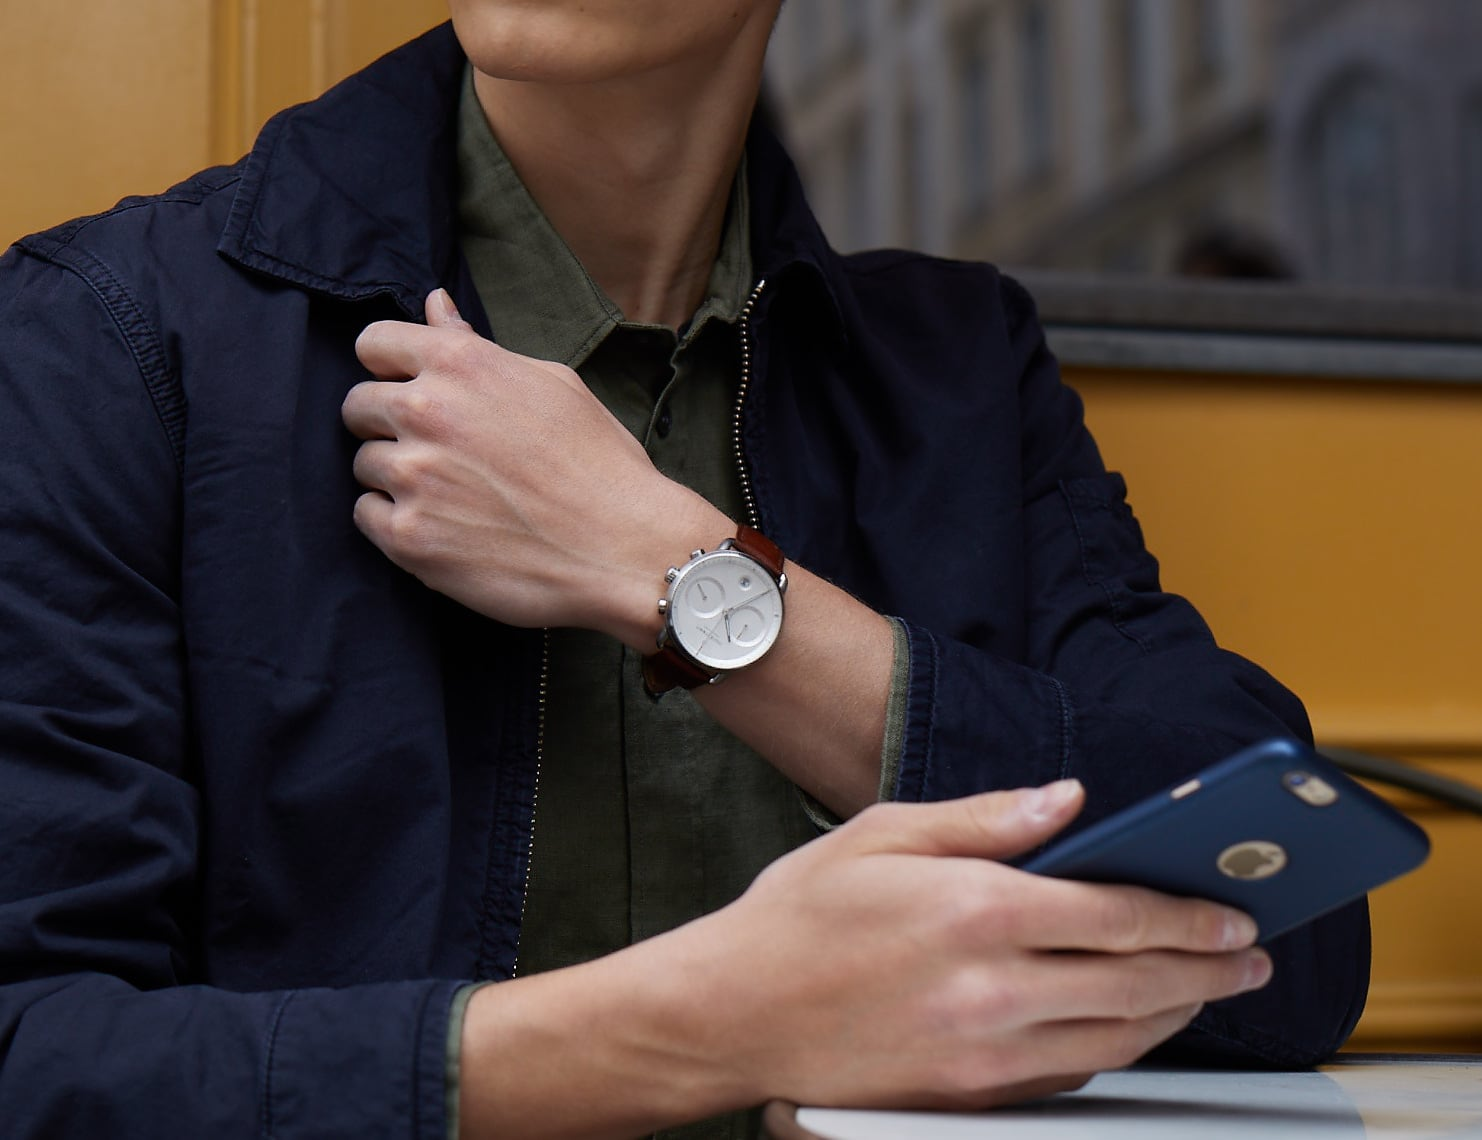 Nordgreen Iconic Sustainable Minimalist Watches give back to the world